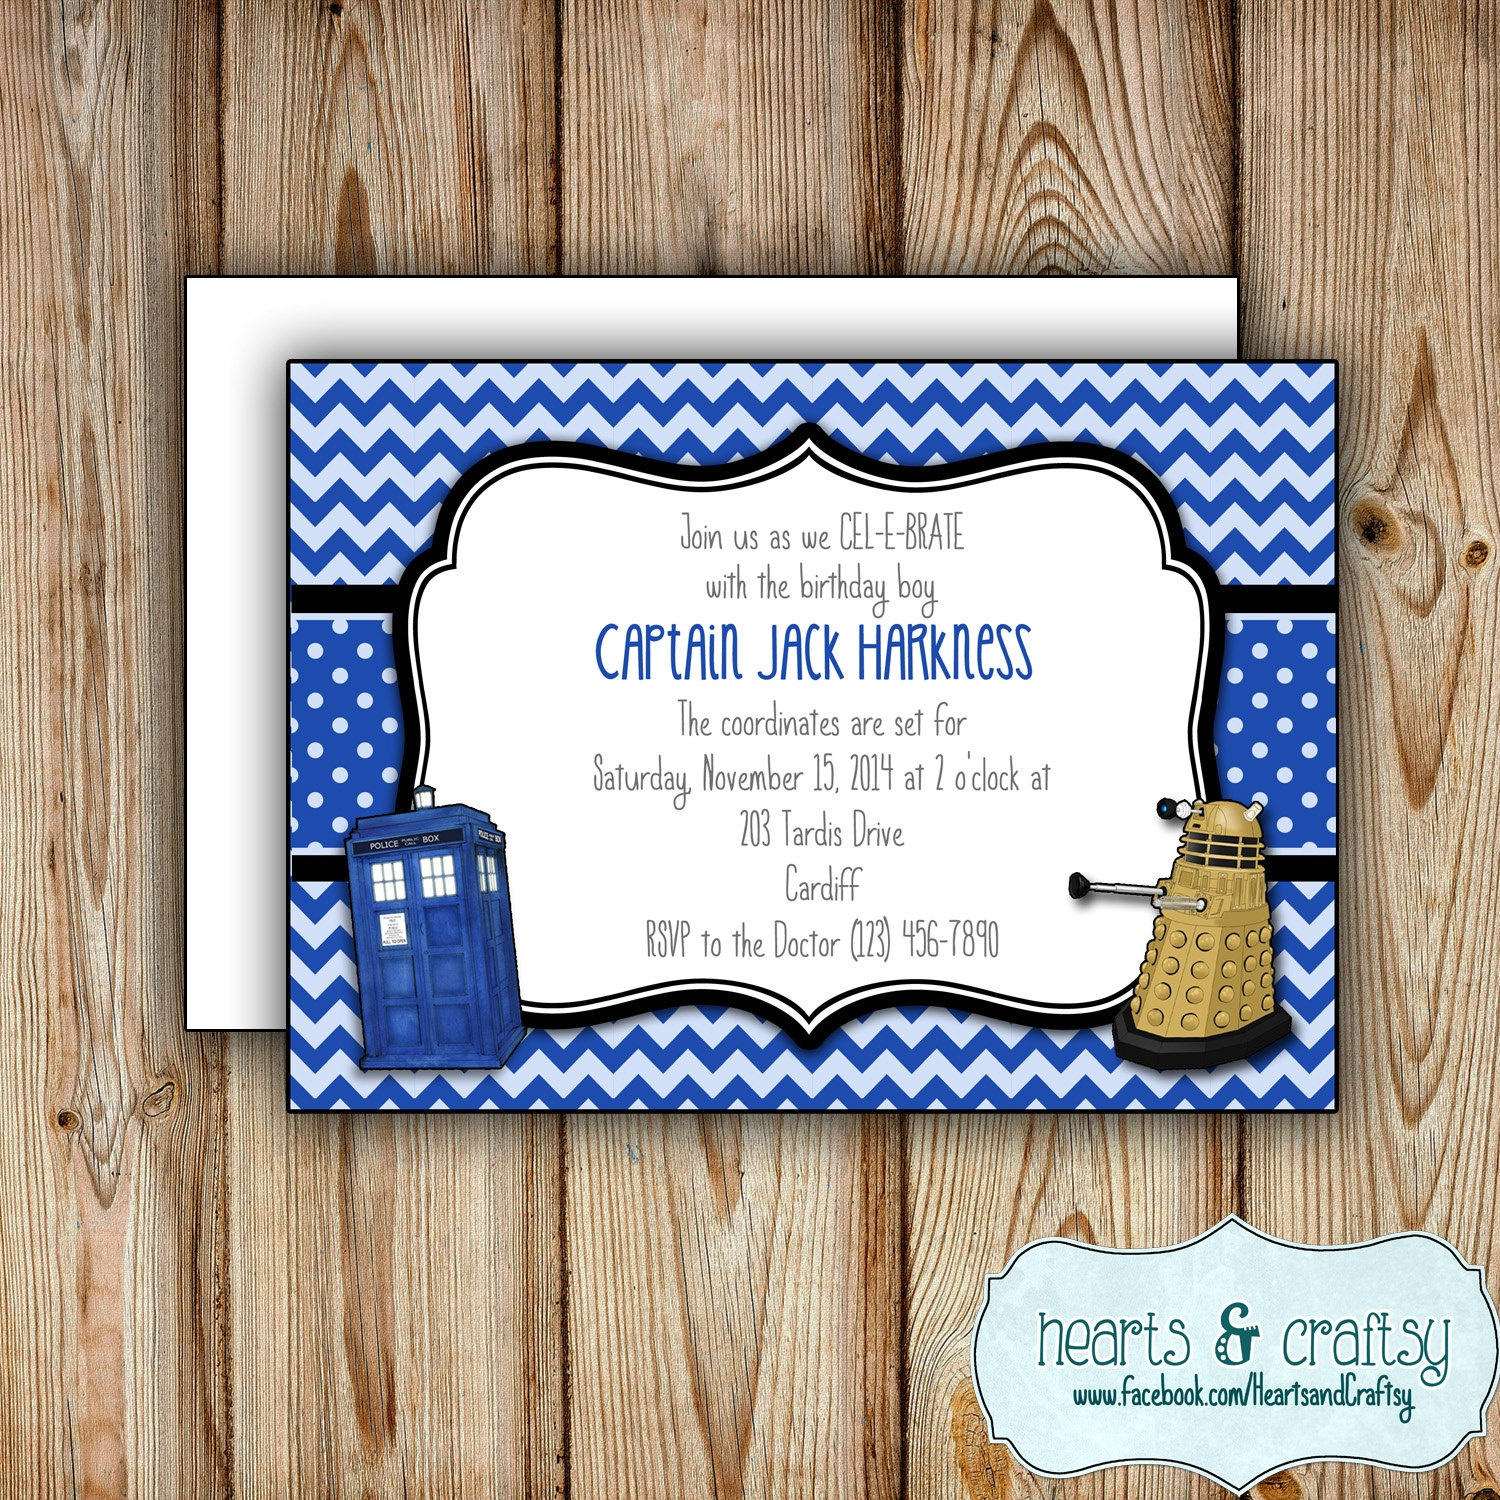 Personalized Printable Doctor Who Party Invitation Doctor | Etsy - Doctor Who Party Invitations Printable Free